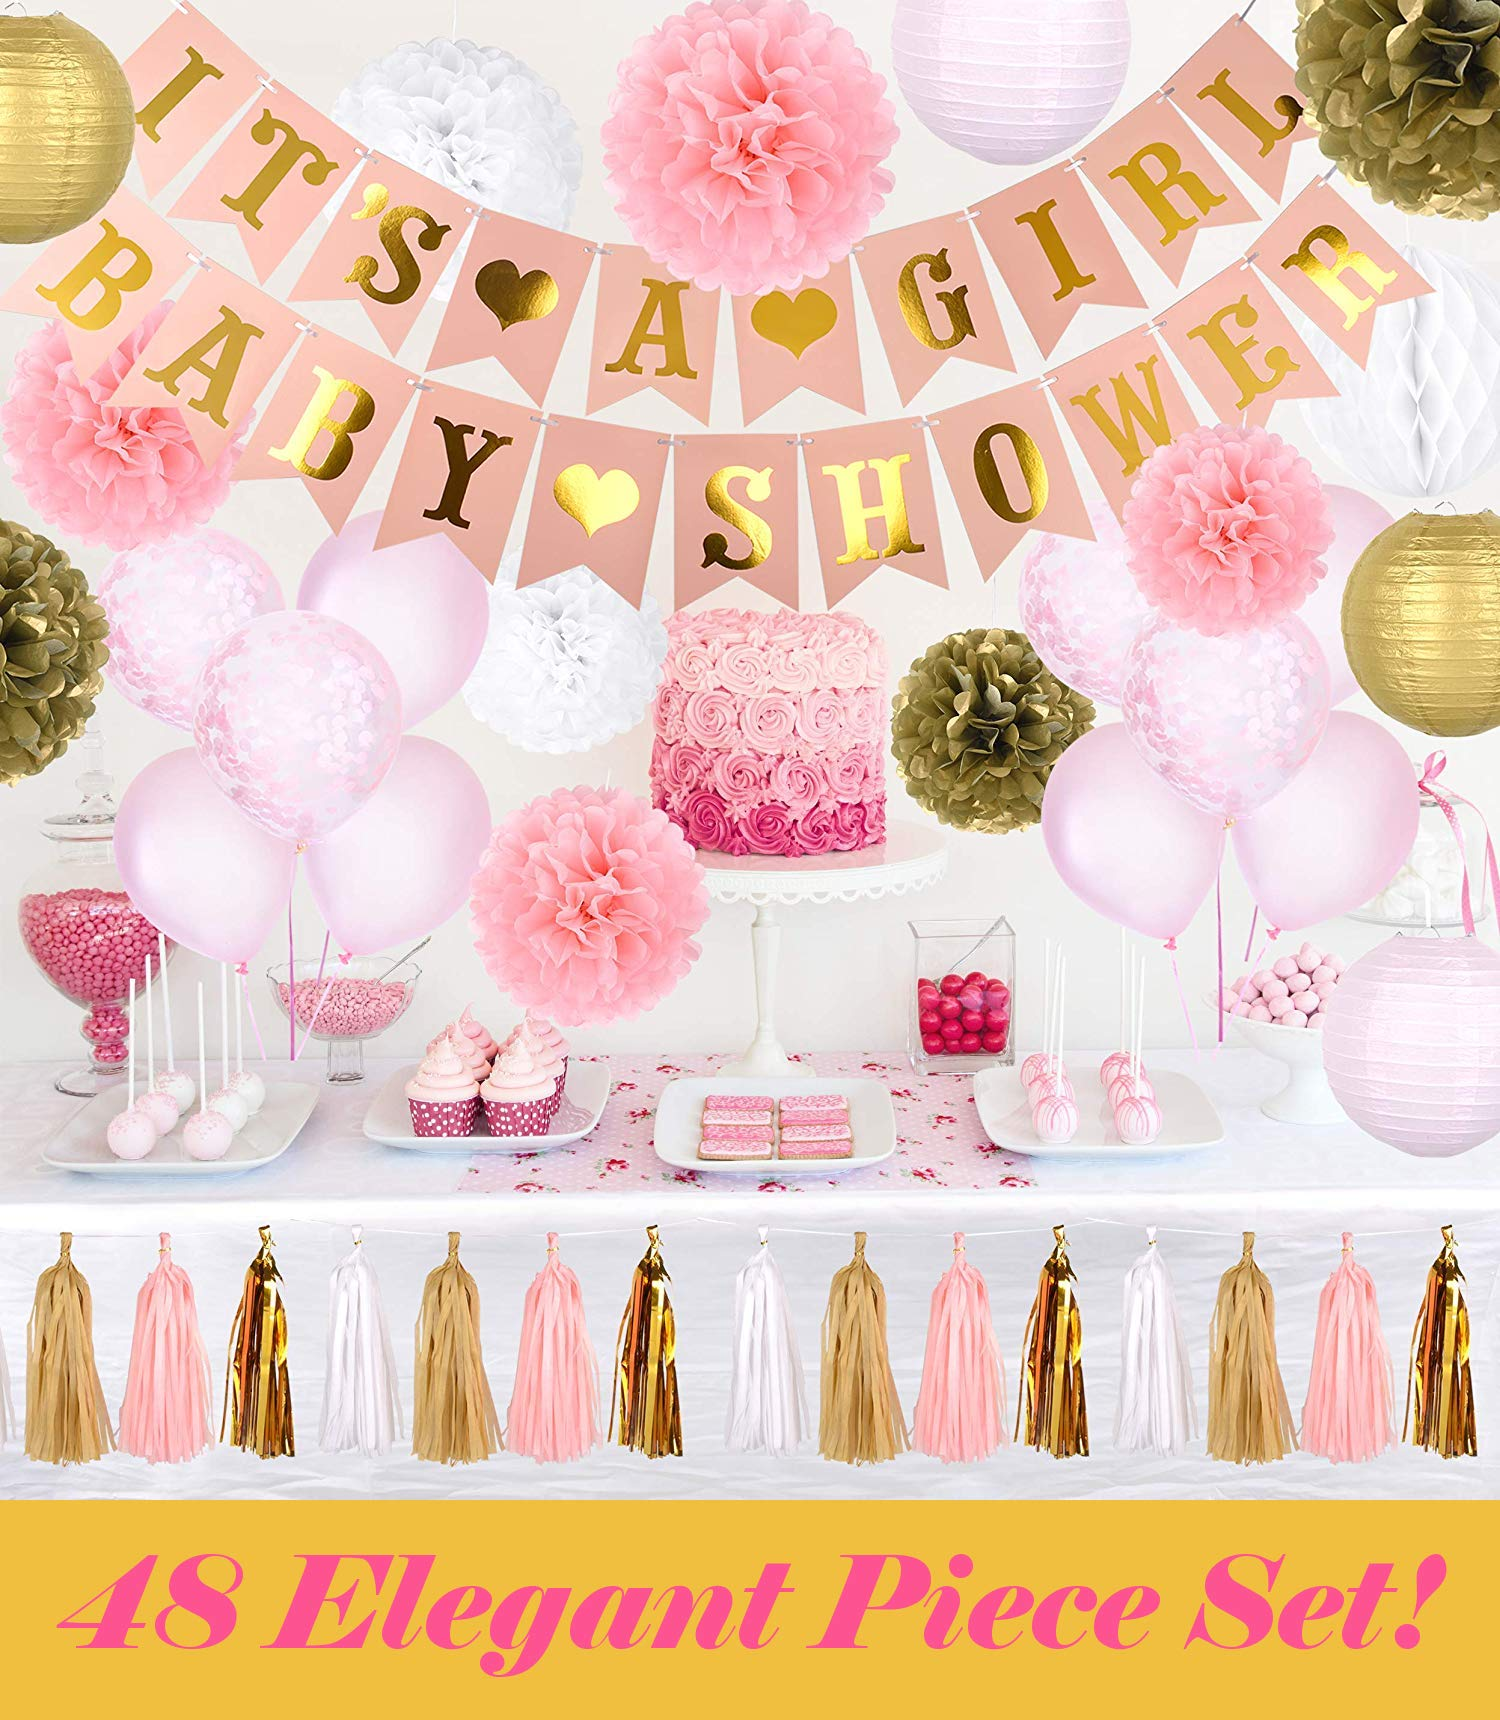 Baby Shower Decorations for Girls | Elegant Pink, White, and Gold Shower Theme Decor | Complete Party Kit Including Tablecloth, Banner & Balloons | 48-Piece Set